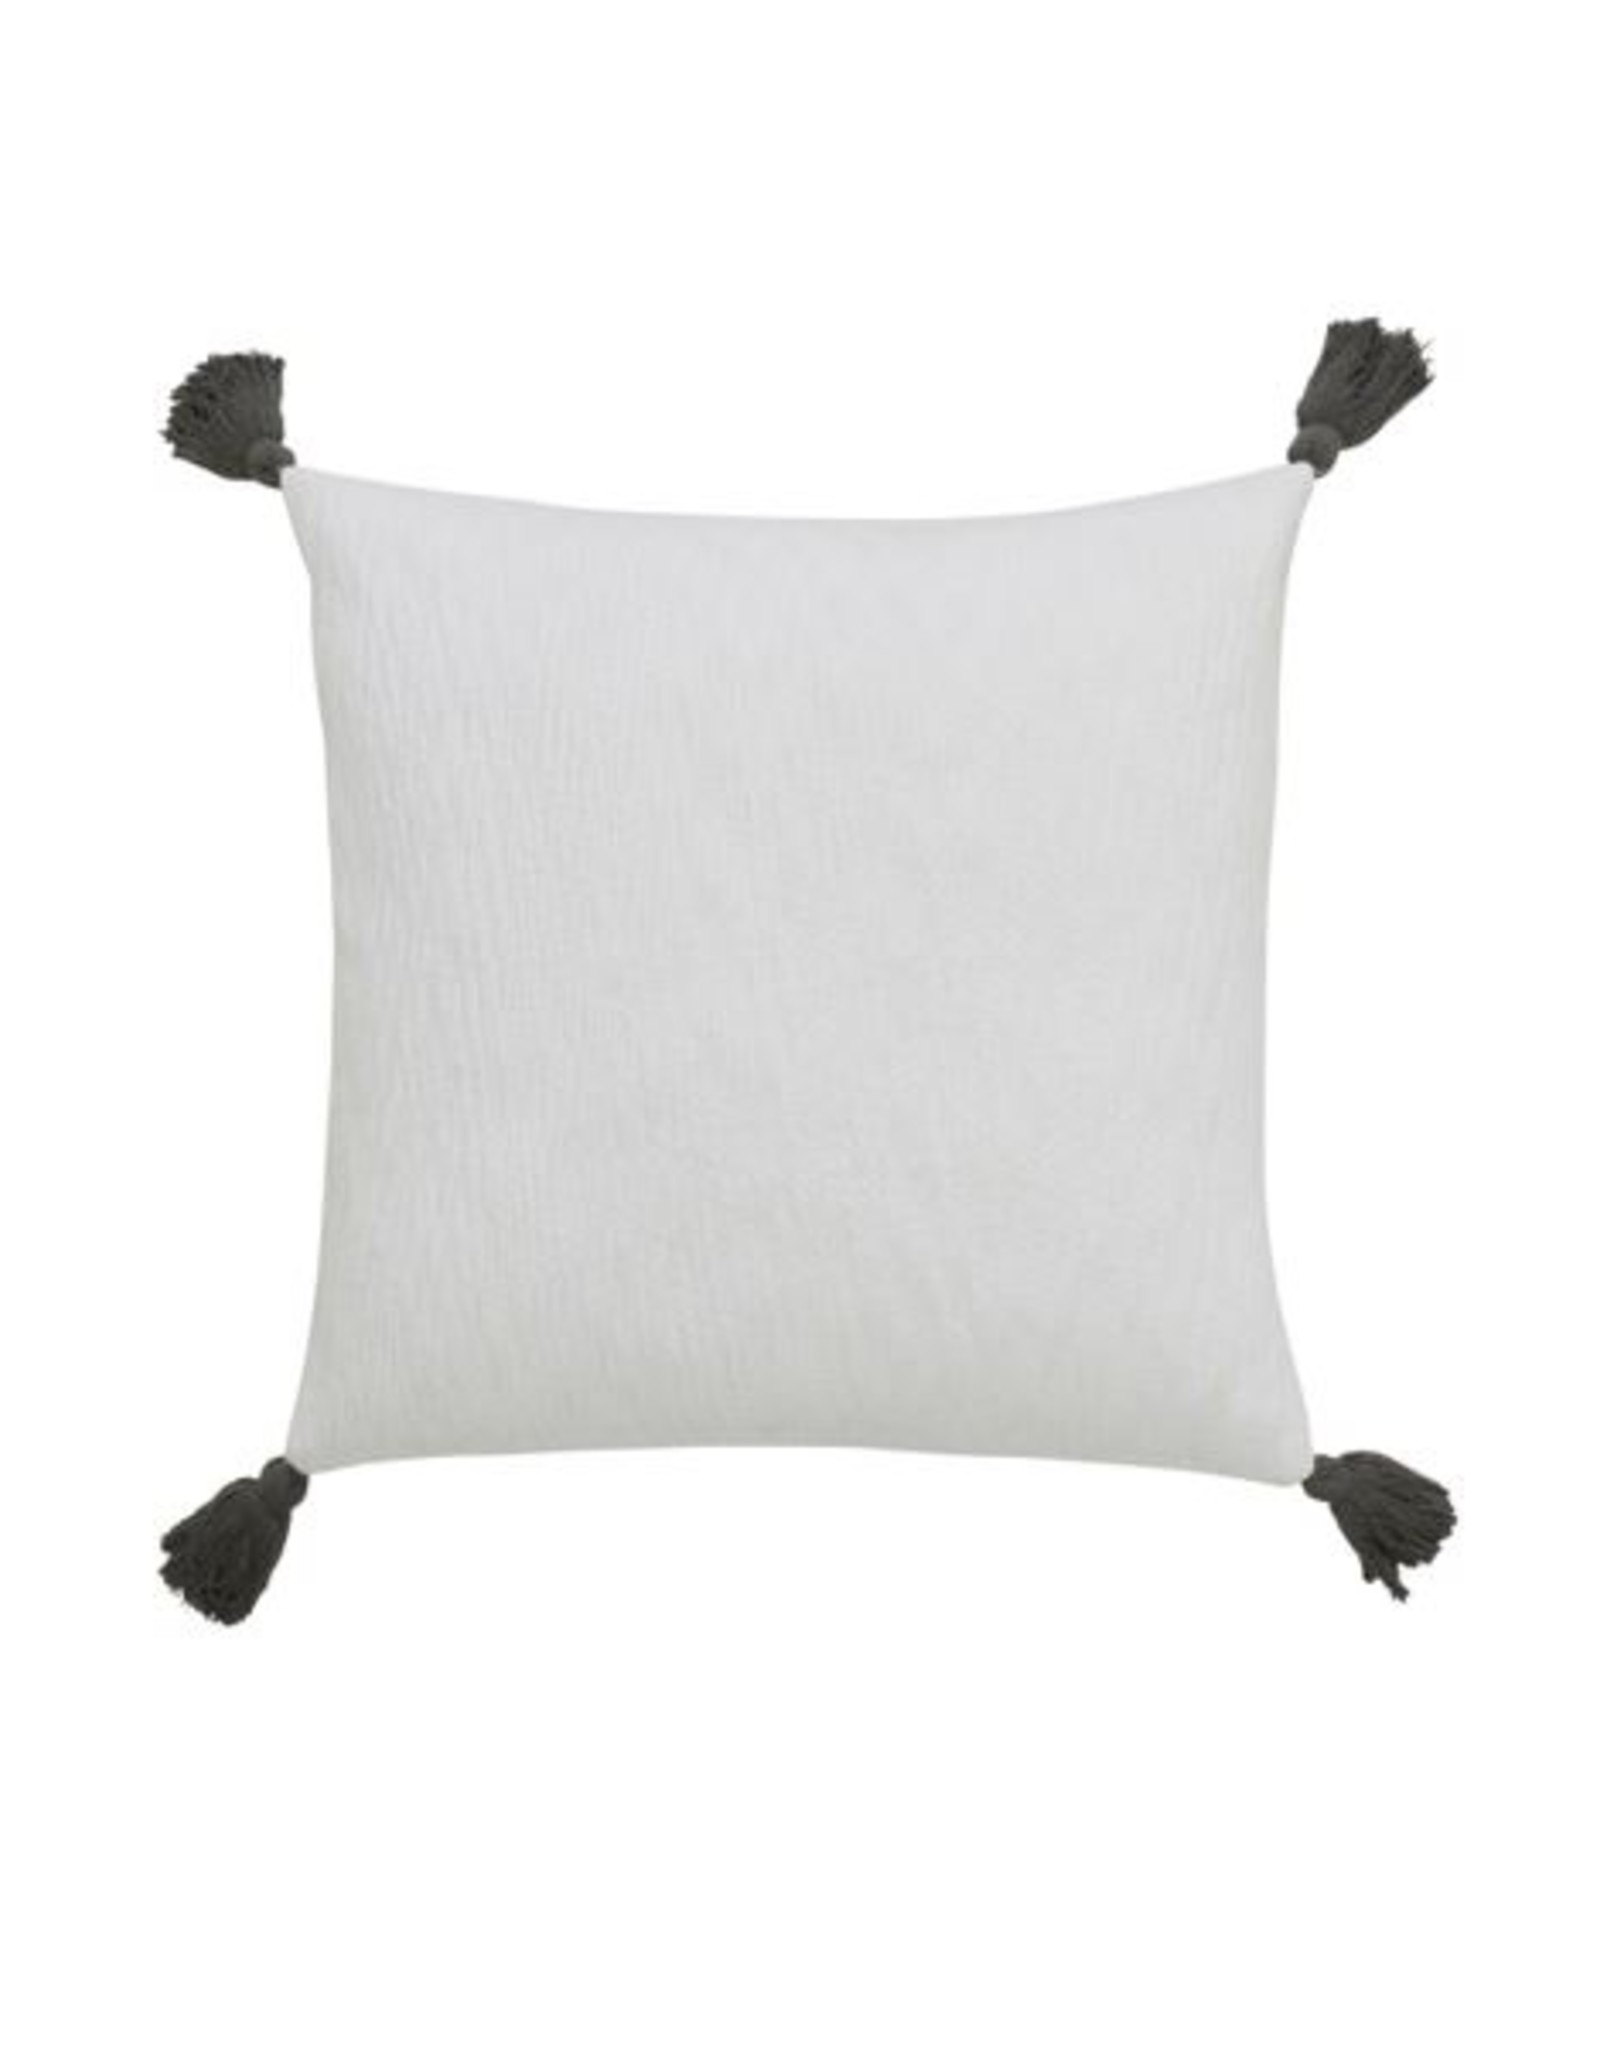 White Pillow with Tassel